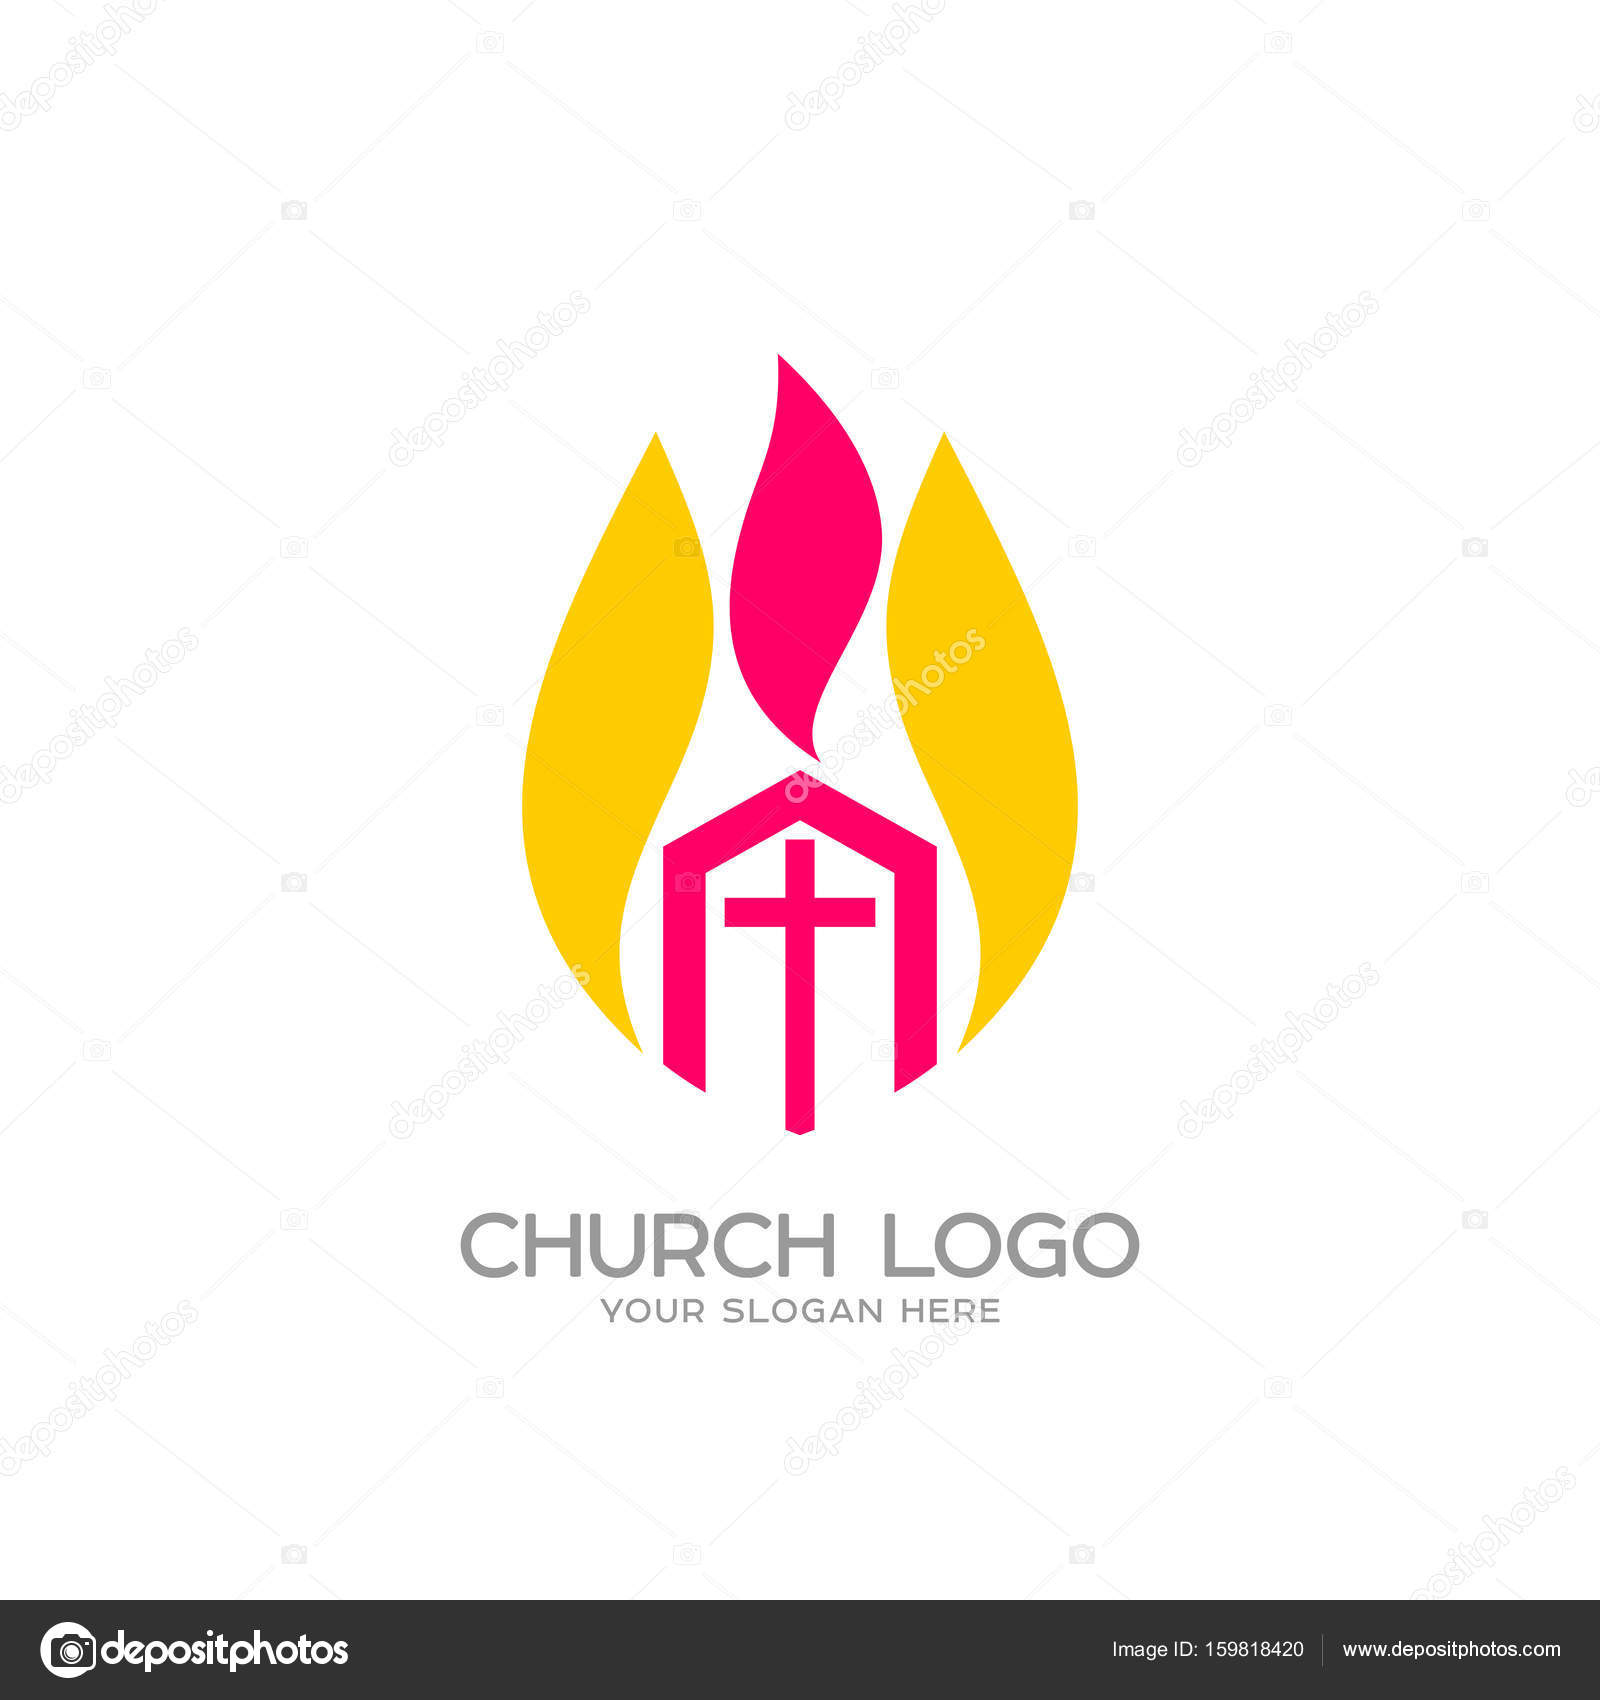 Church Logo Christian Symbols The Church Of Christ And The Flame